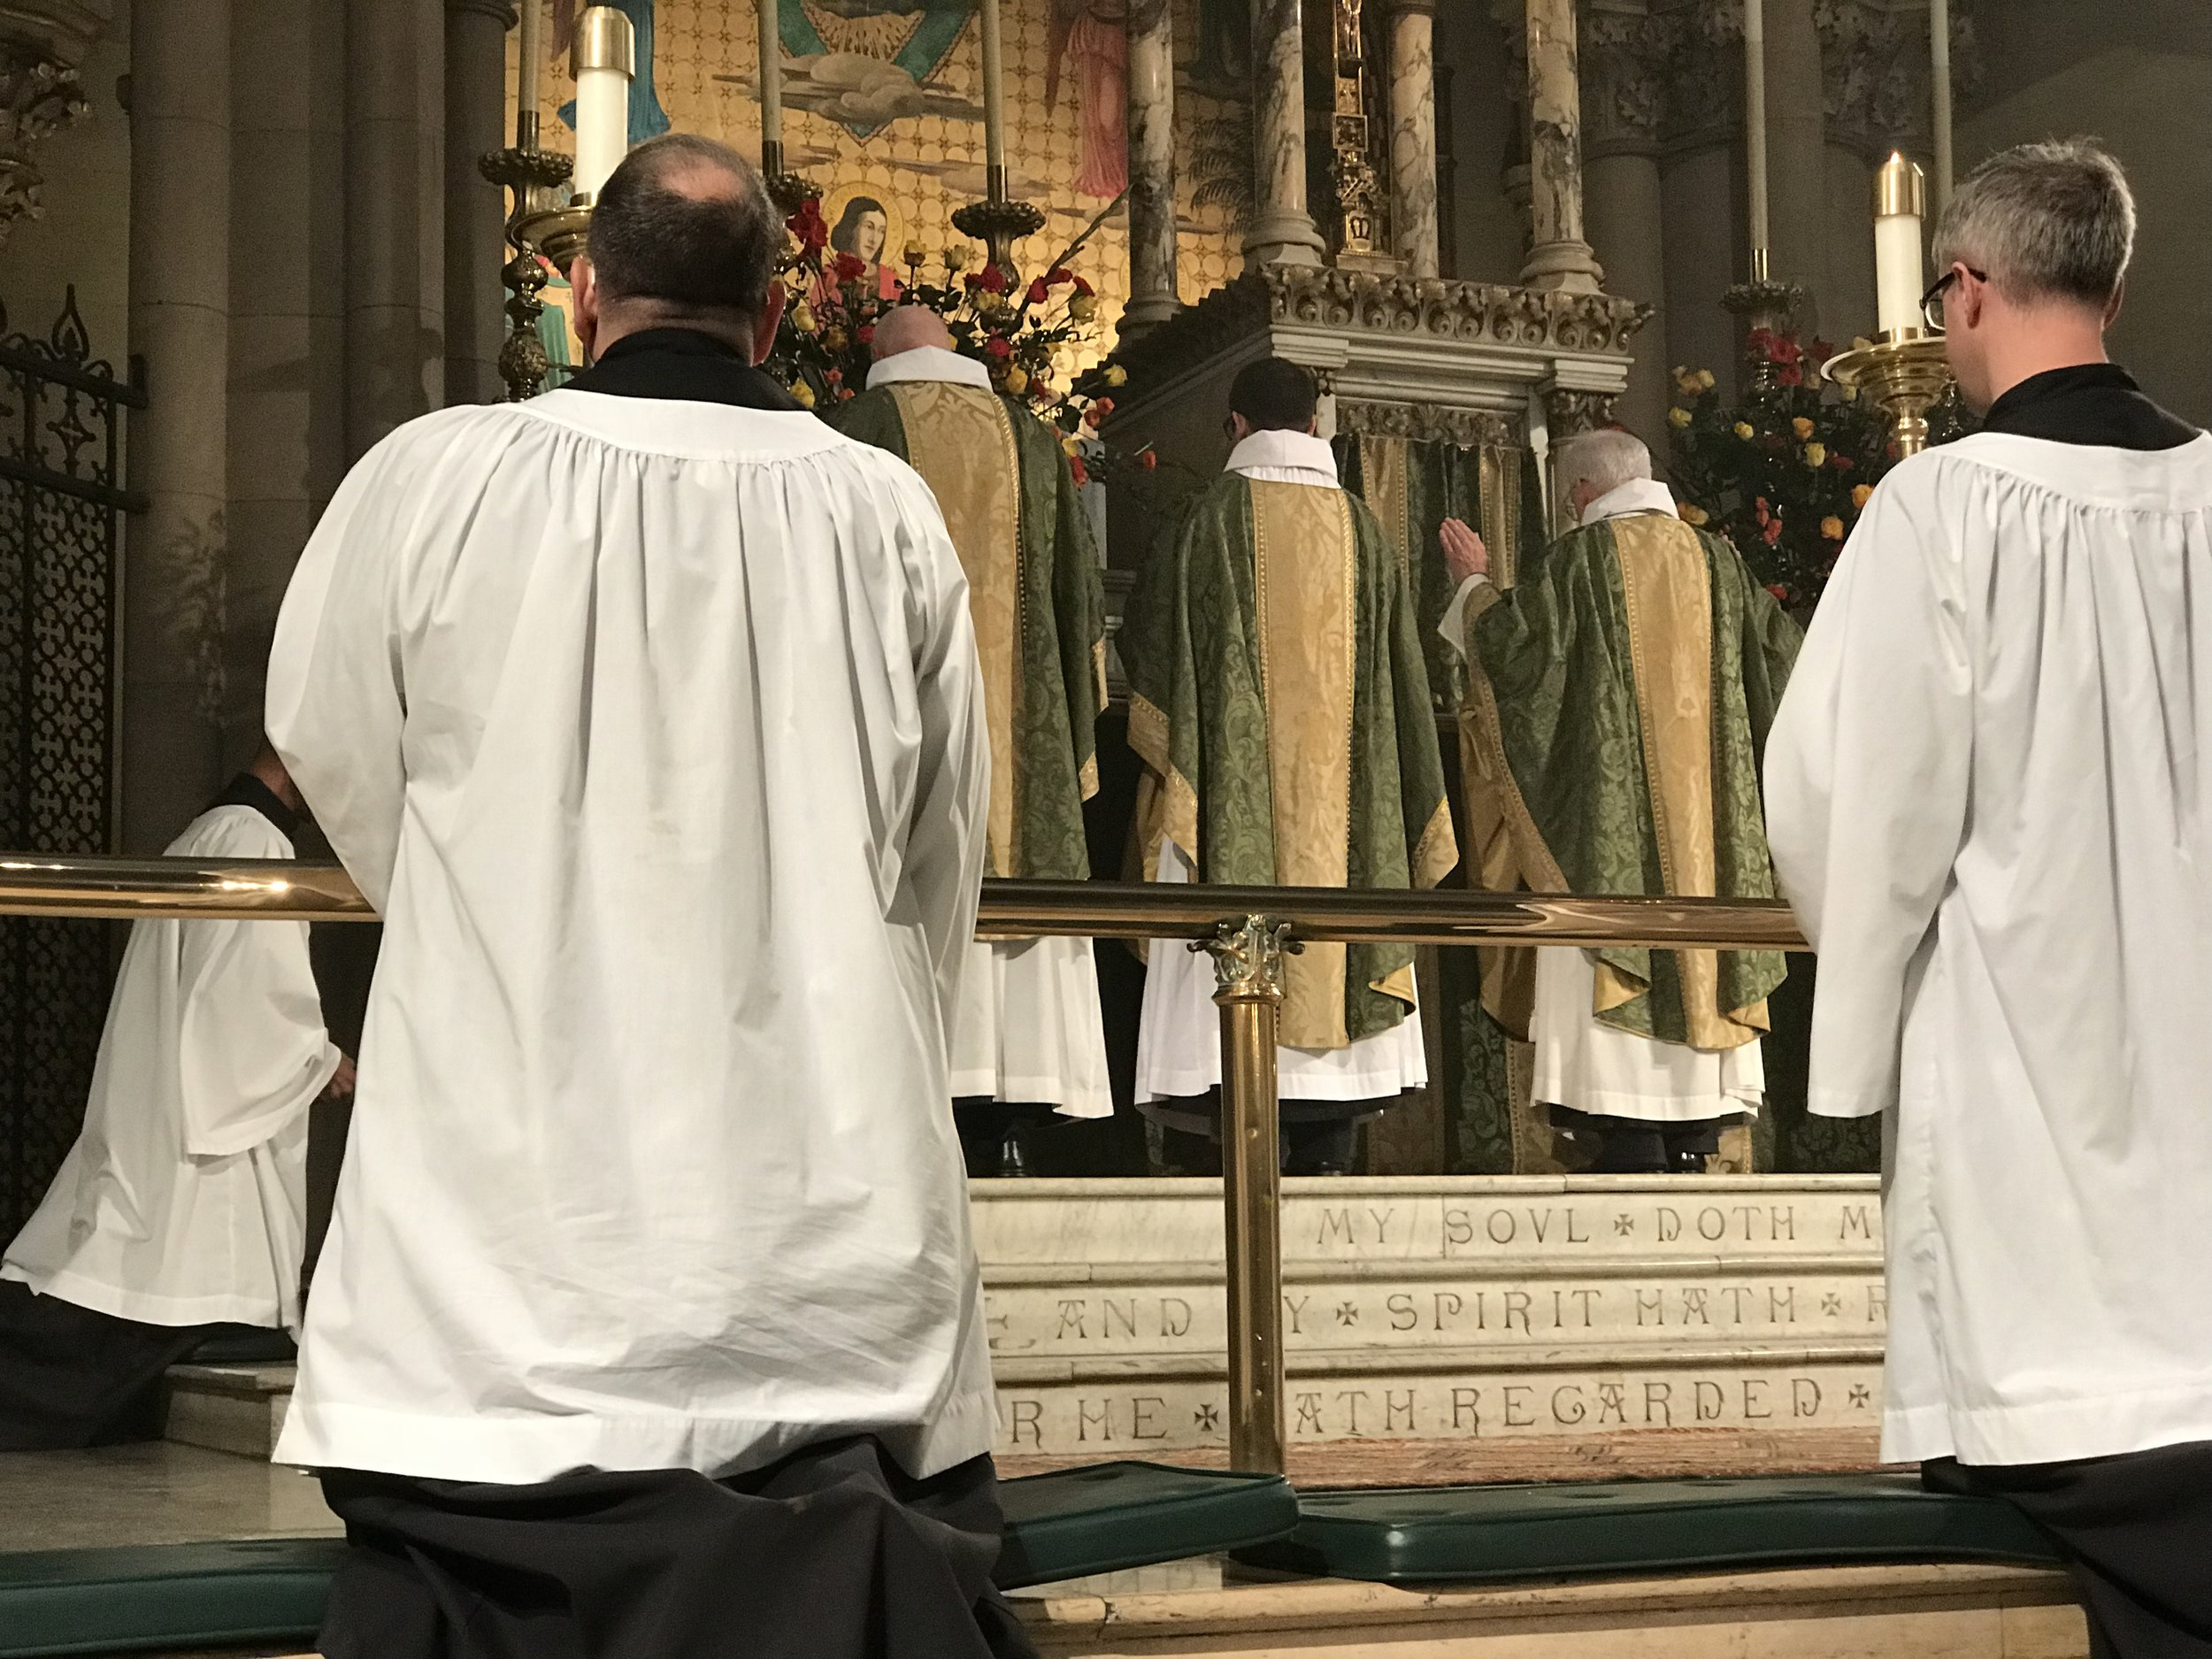 Father Jim Pace was celebrant and preacher for the Solemn Mass on Sunday, November 18, 2018.  Photo by Br. Damien SSF